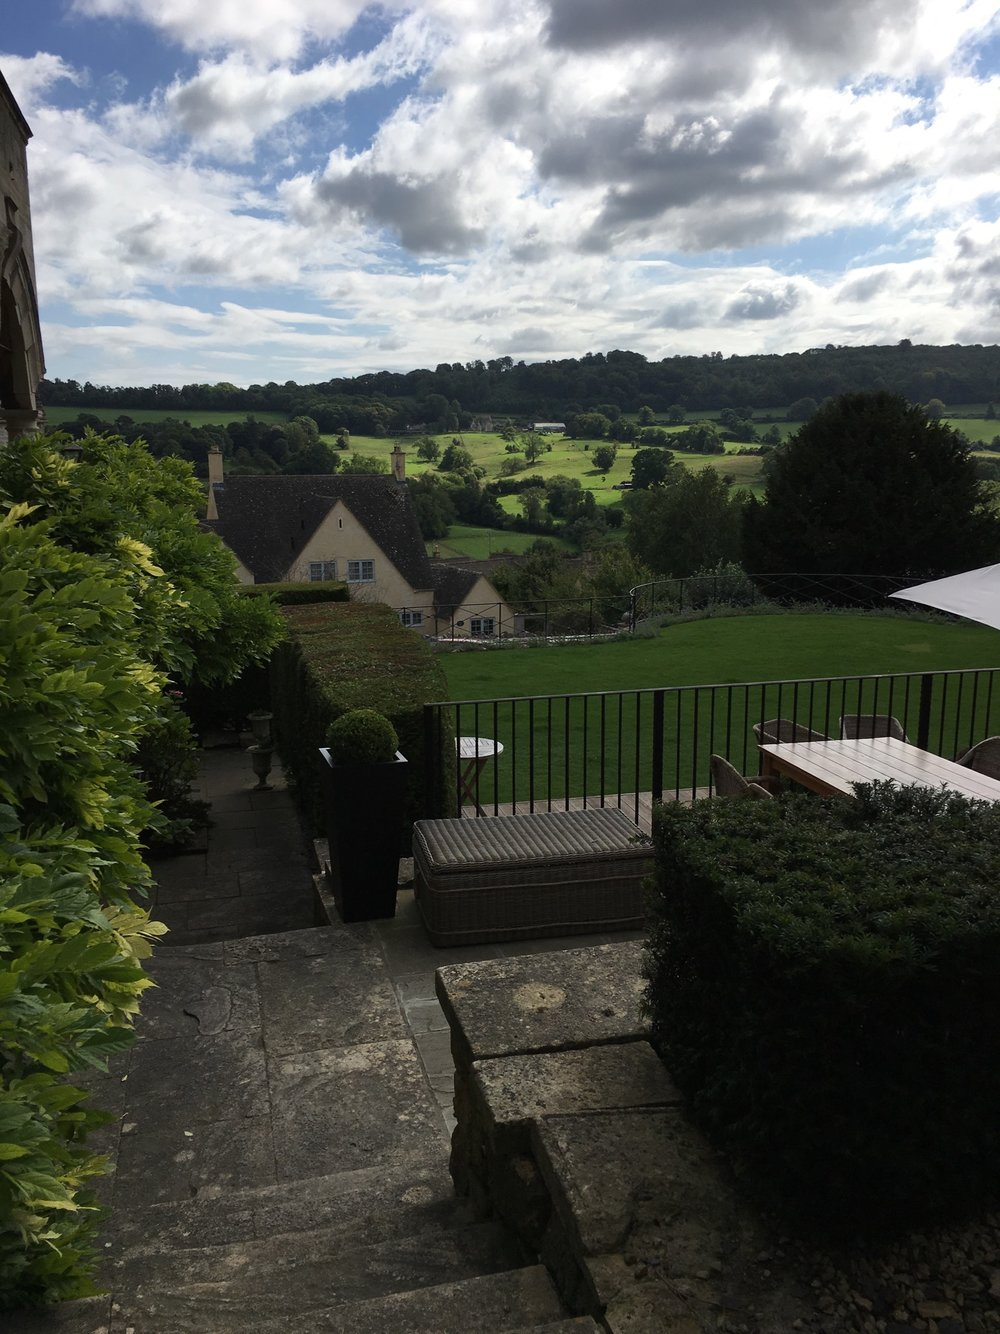 View from The Painswick